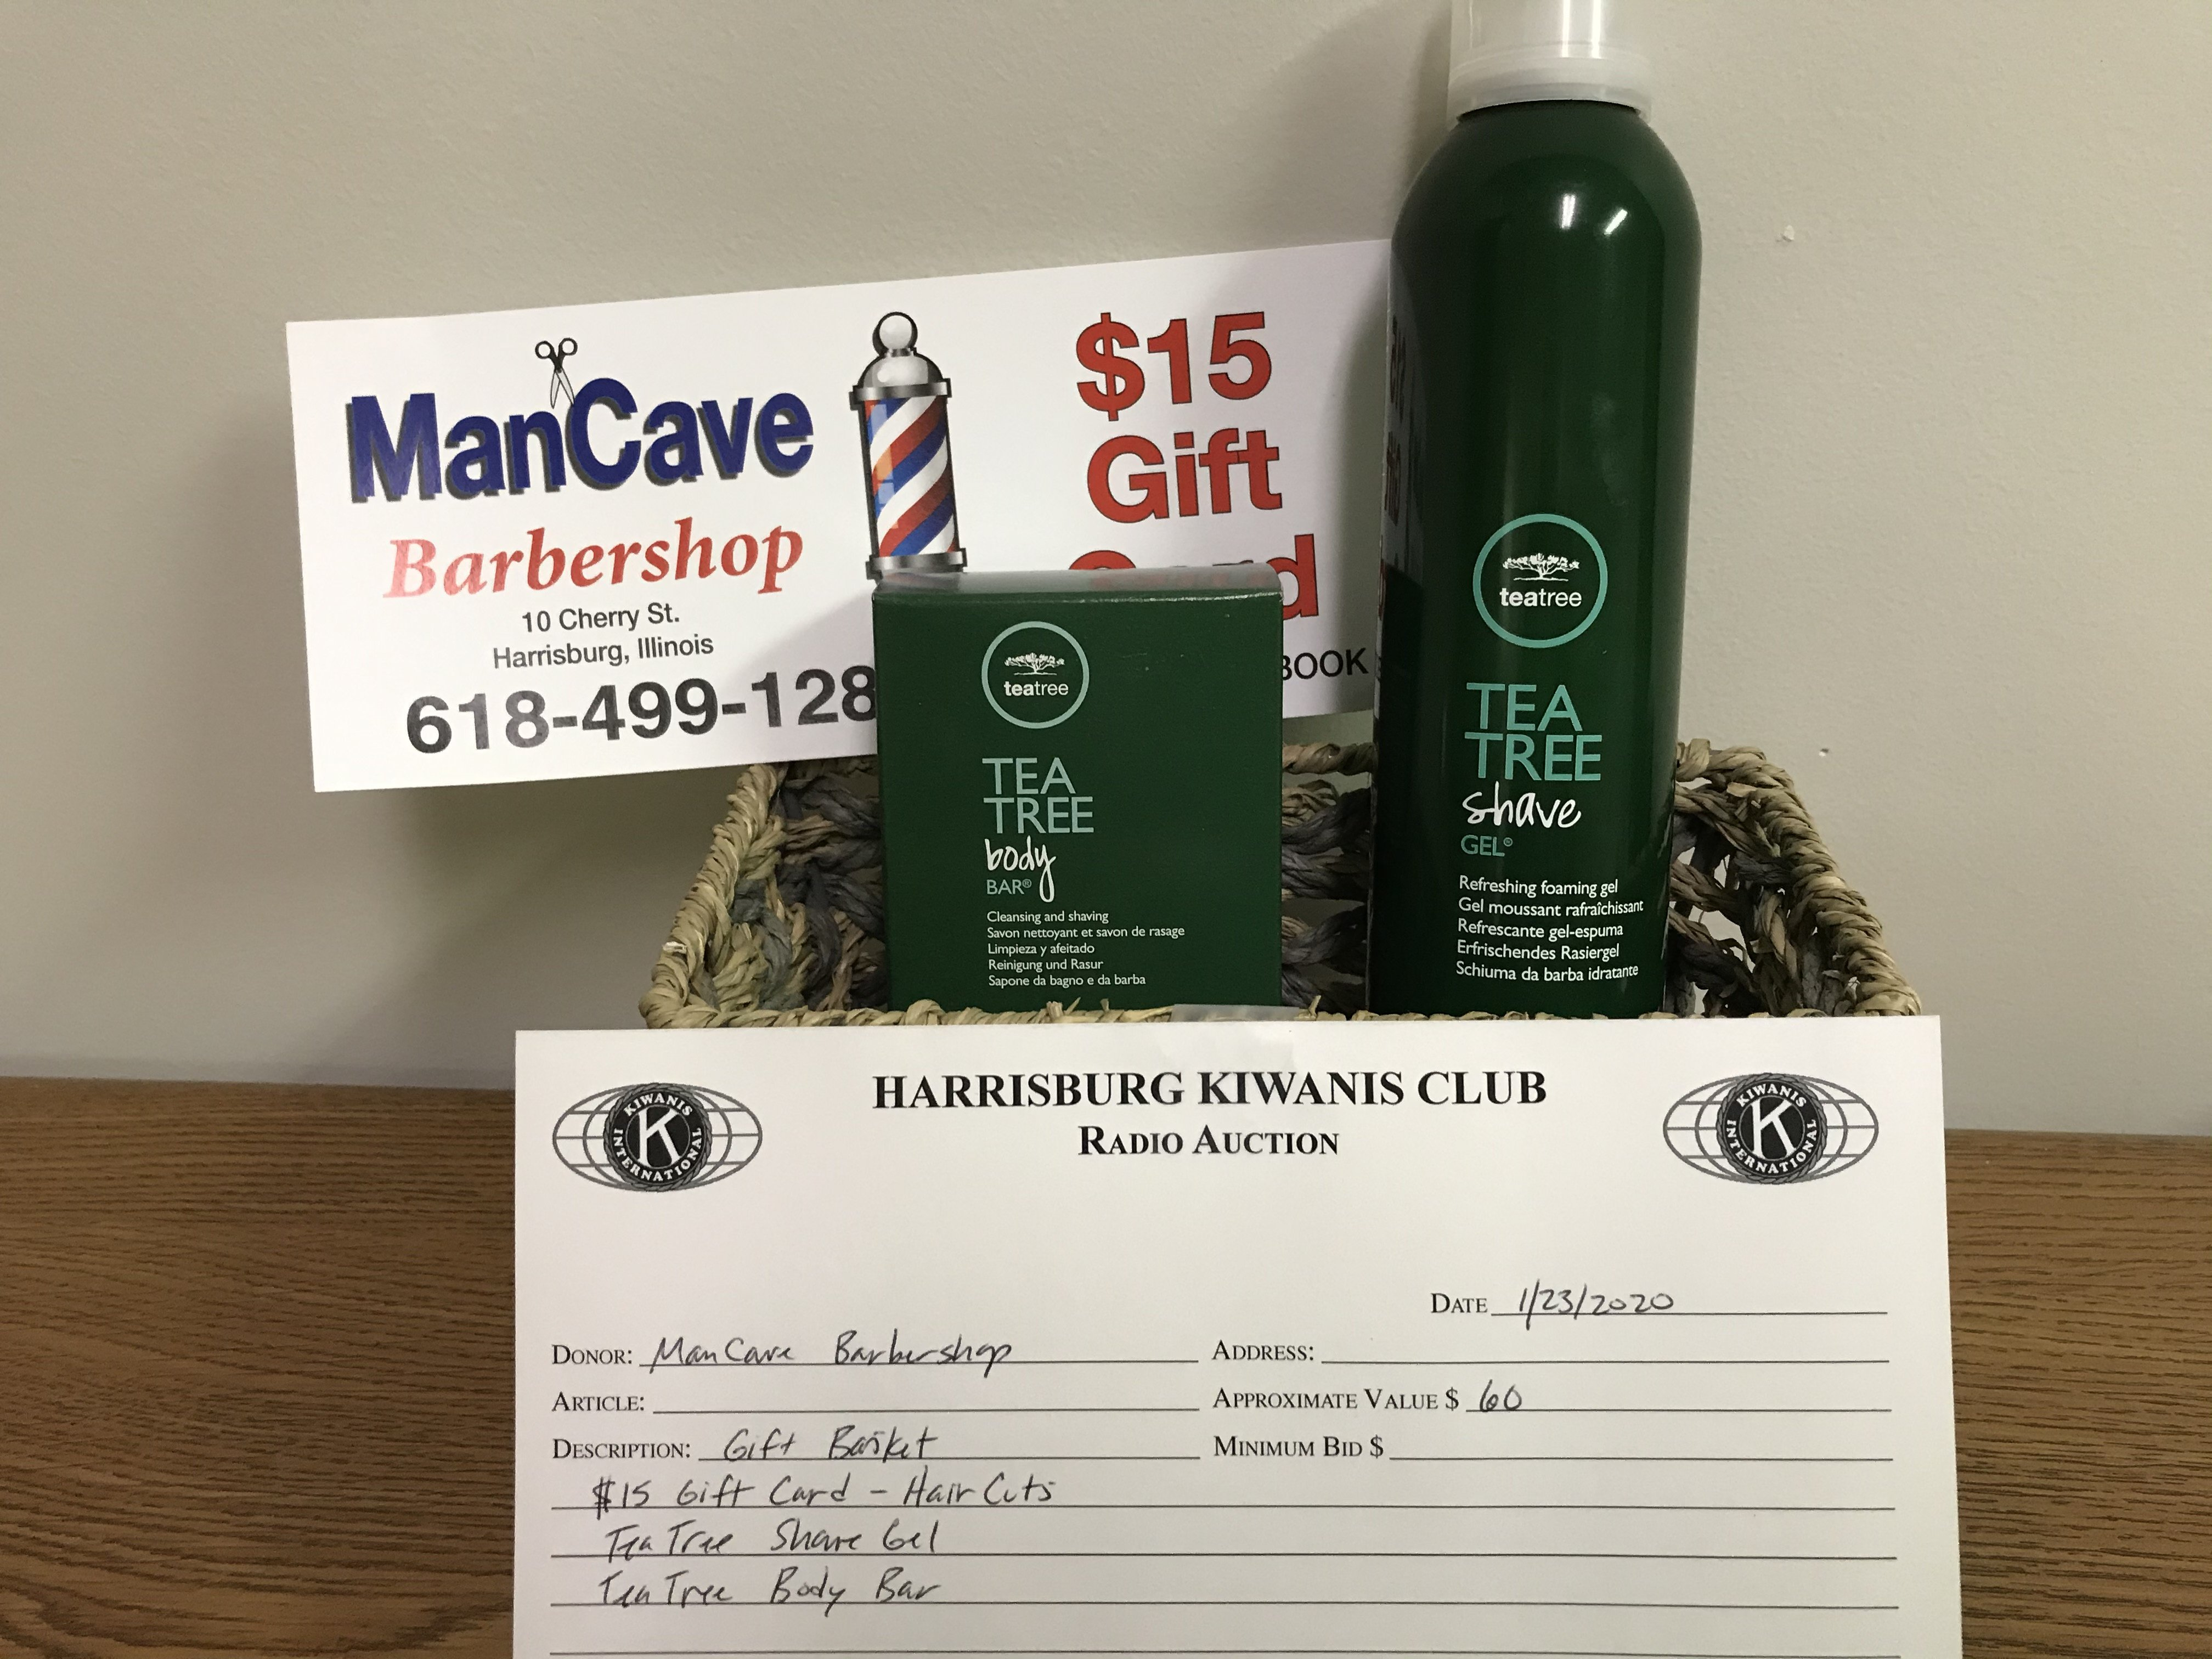 Item 419 - Man Cave Barbershop $15 Gift Card for Haircuts, TeaTree Shave Gel and Soap